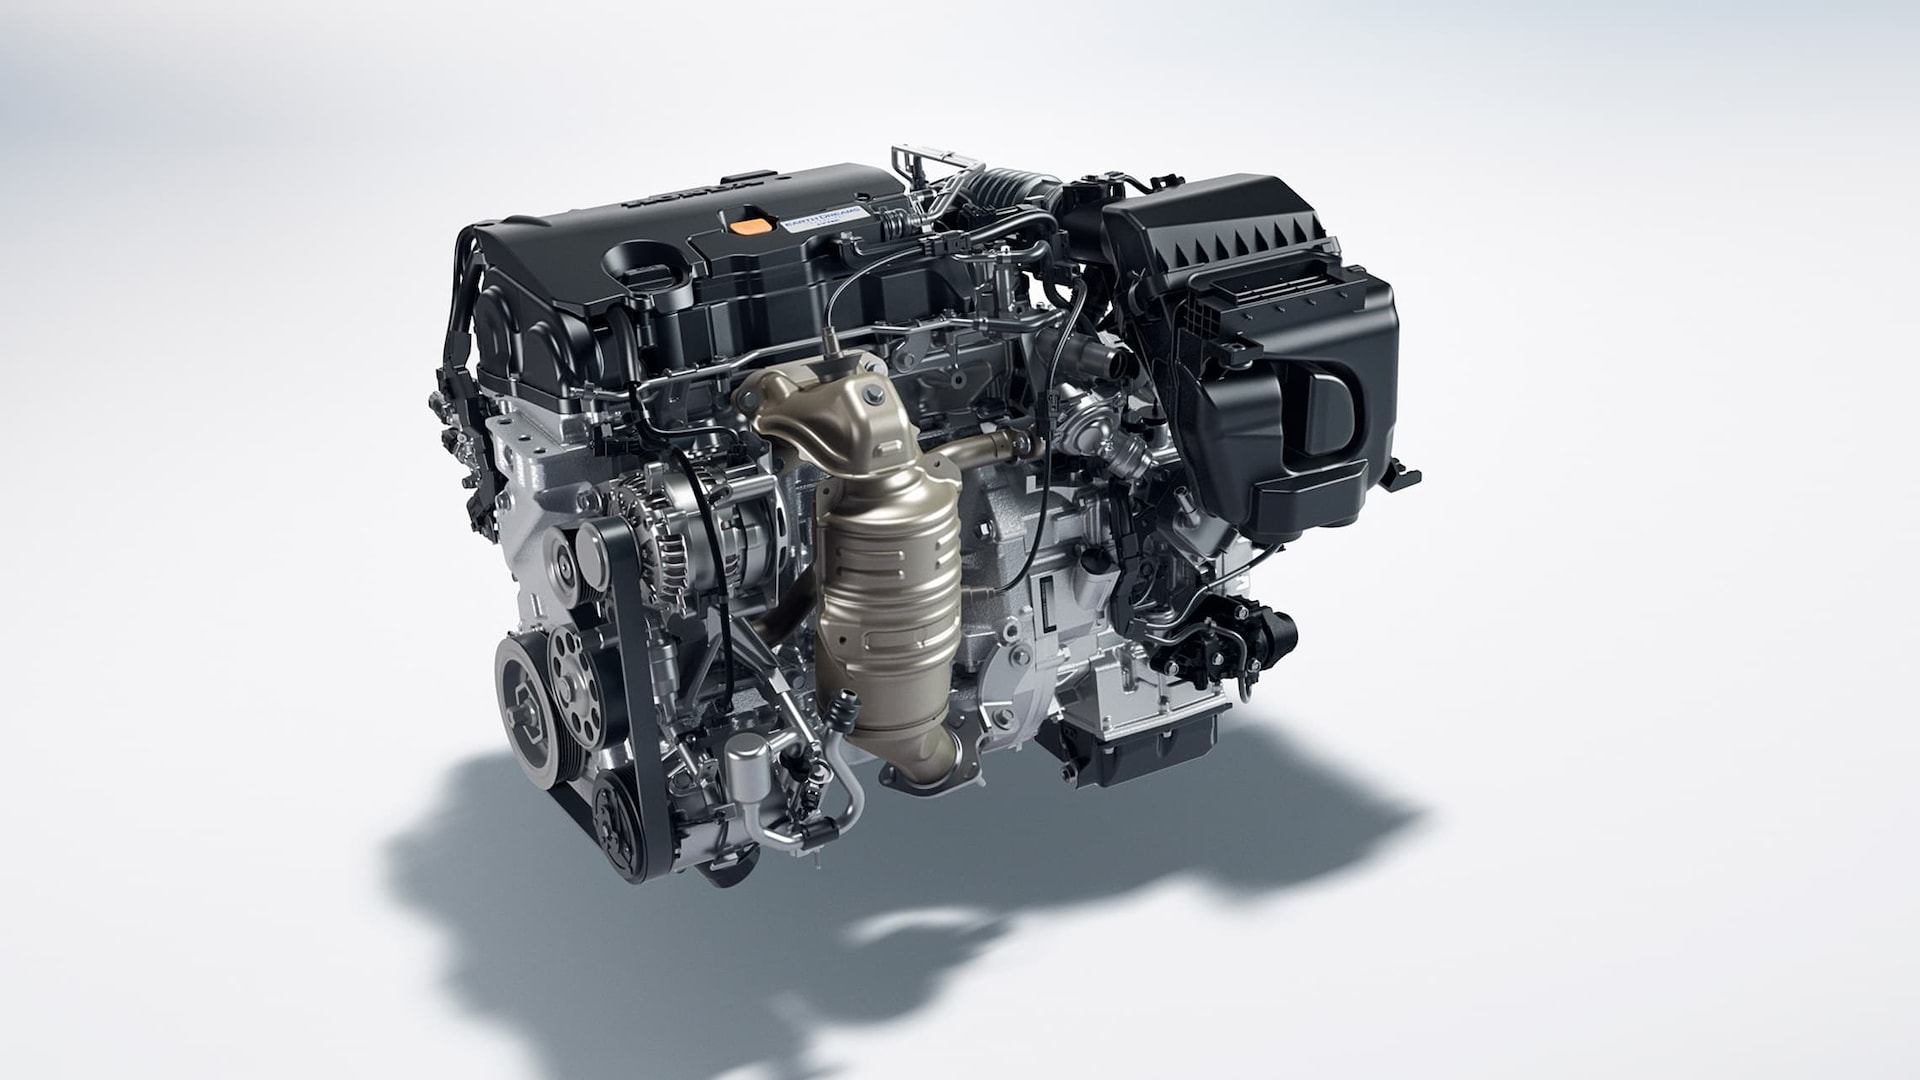 2.0-liter, 4-cylinder engine detail in the 2020 Honda Civic LX Sedan.